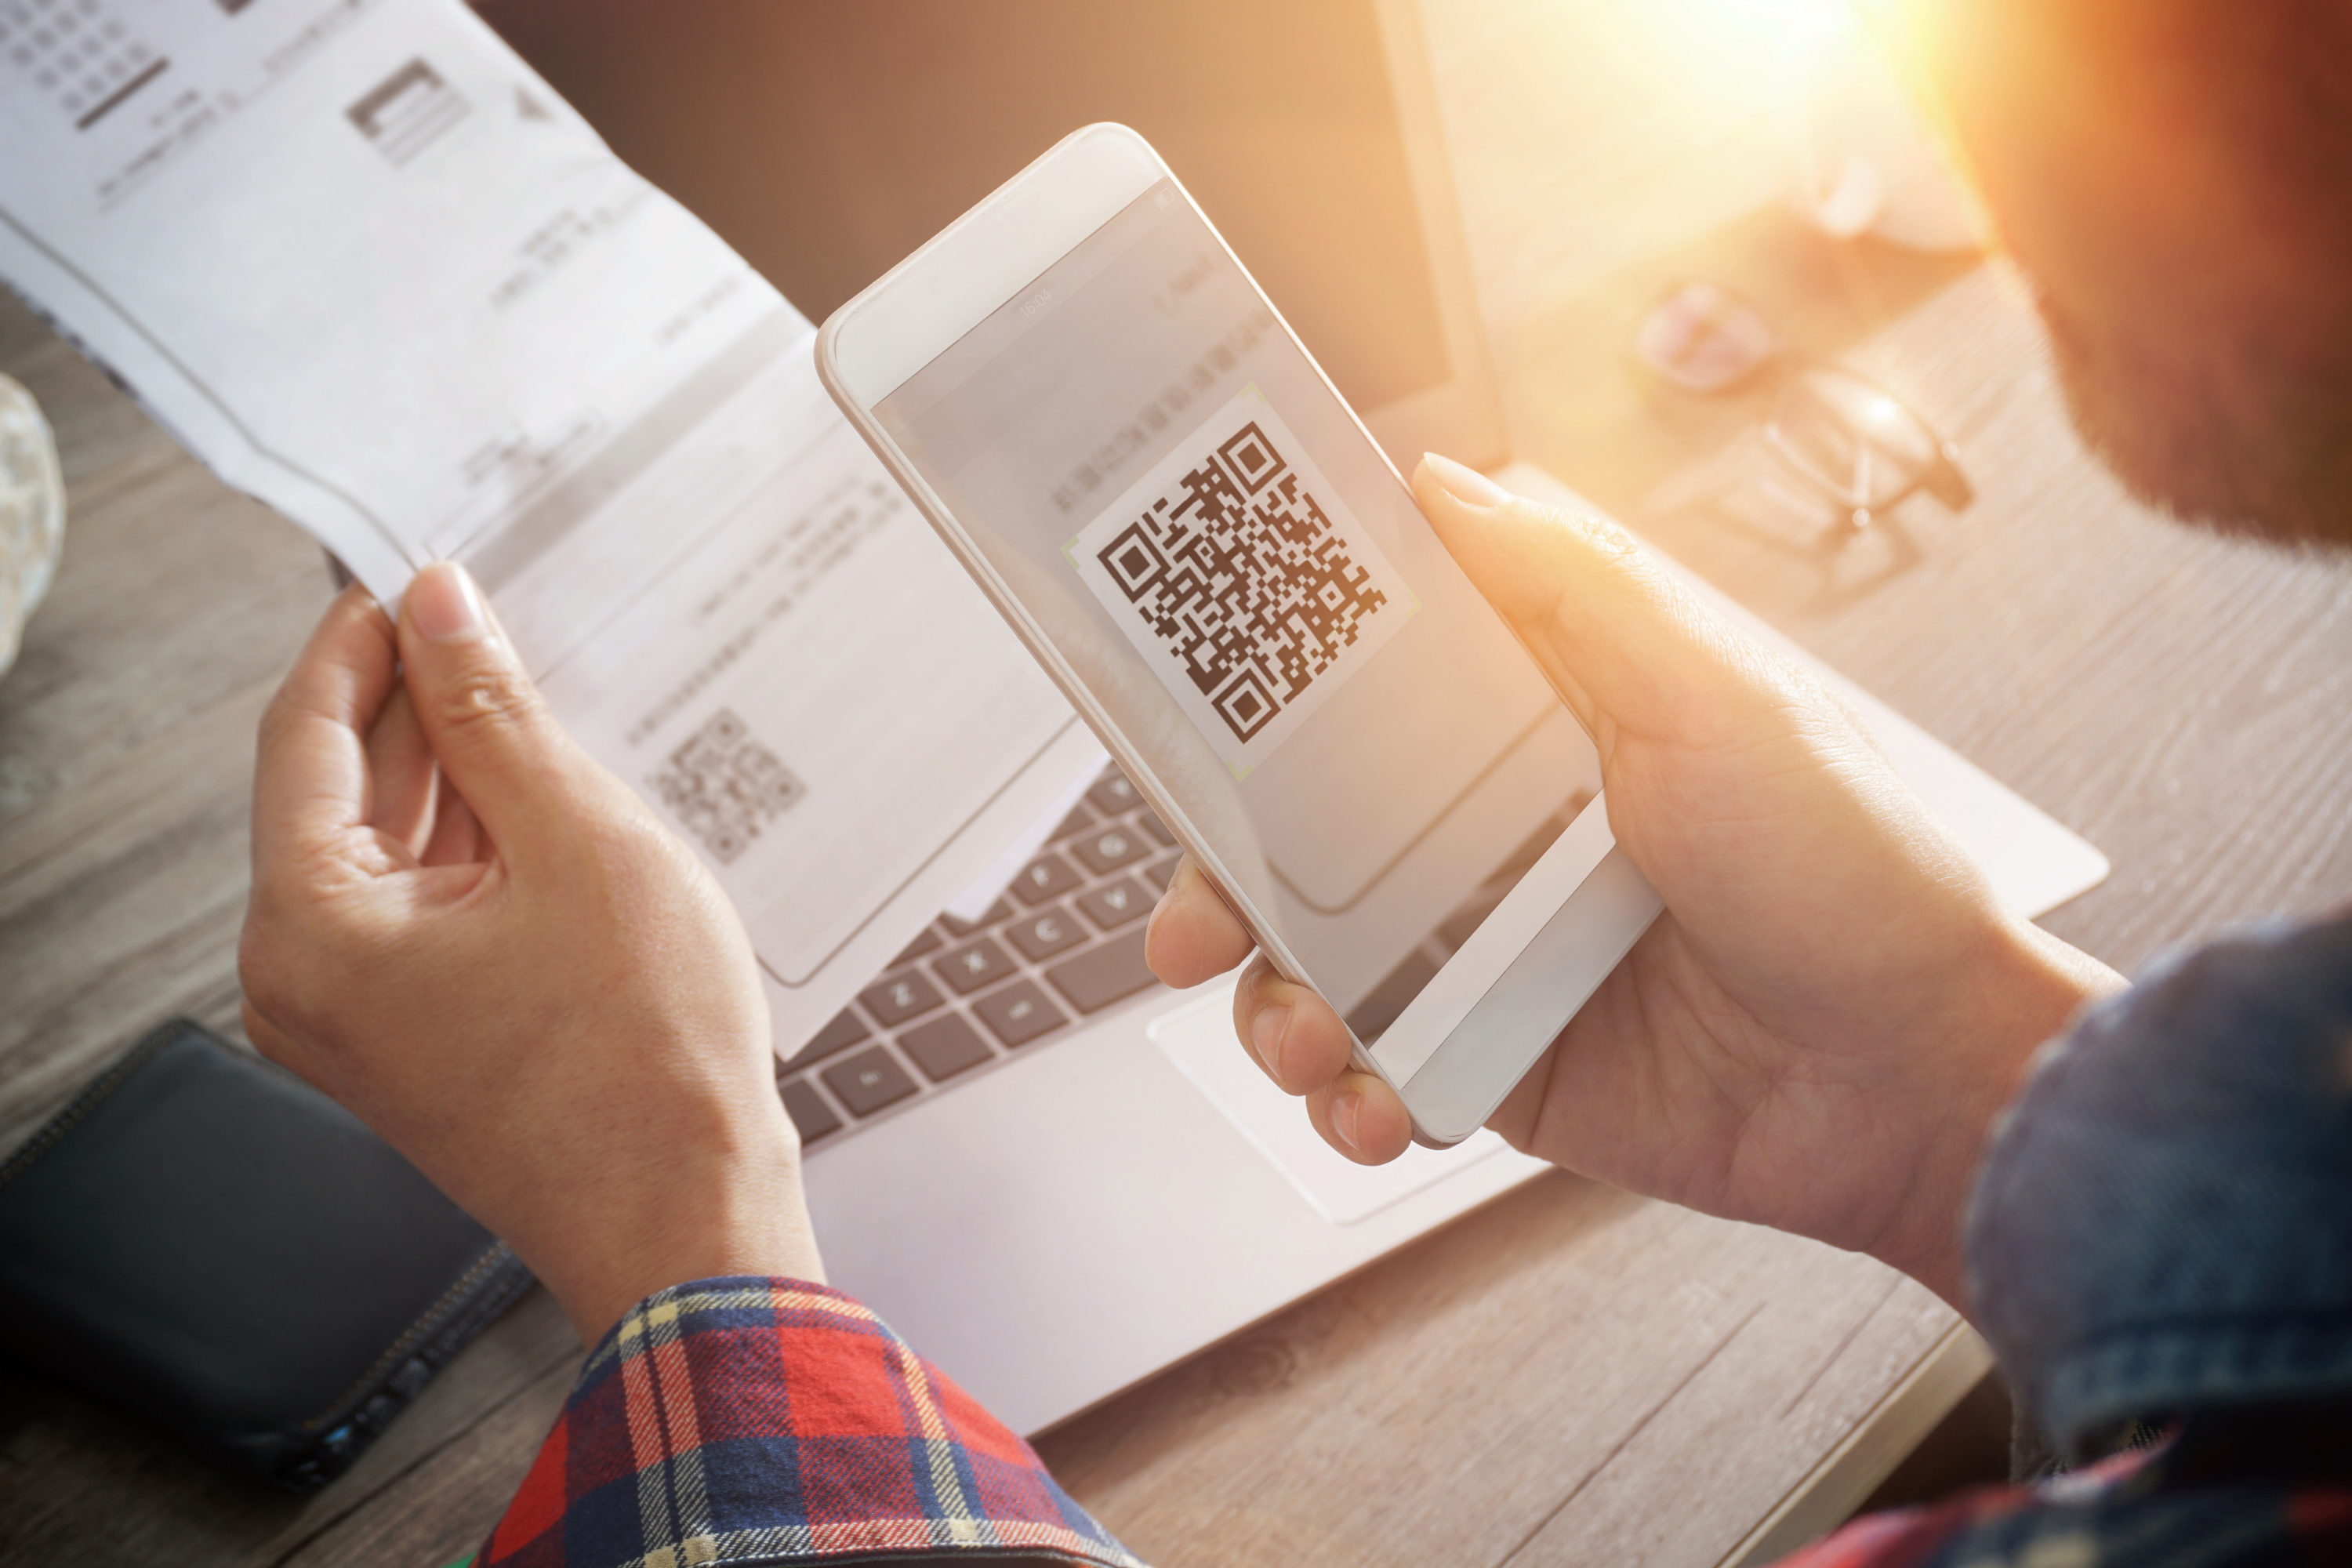 Viewing QR code on phone